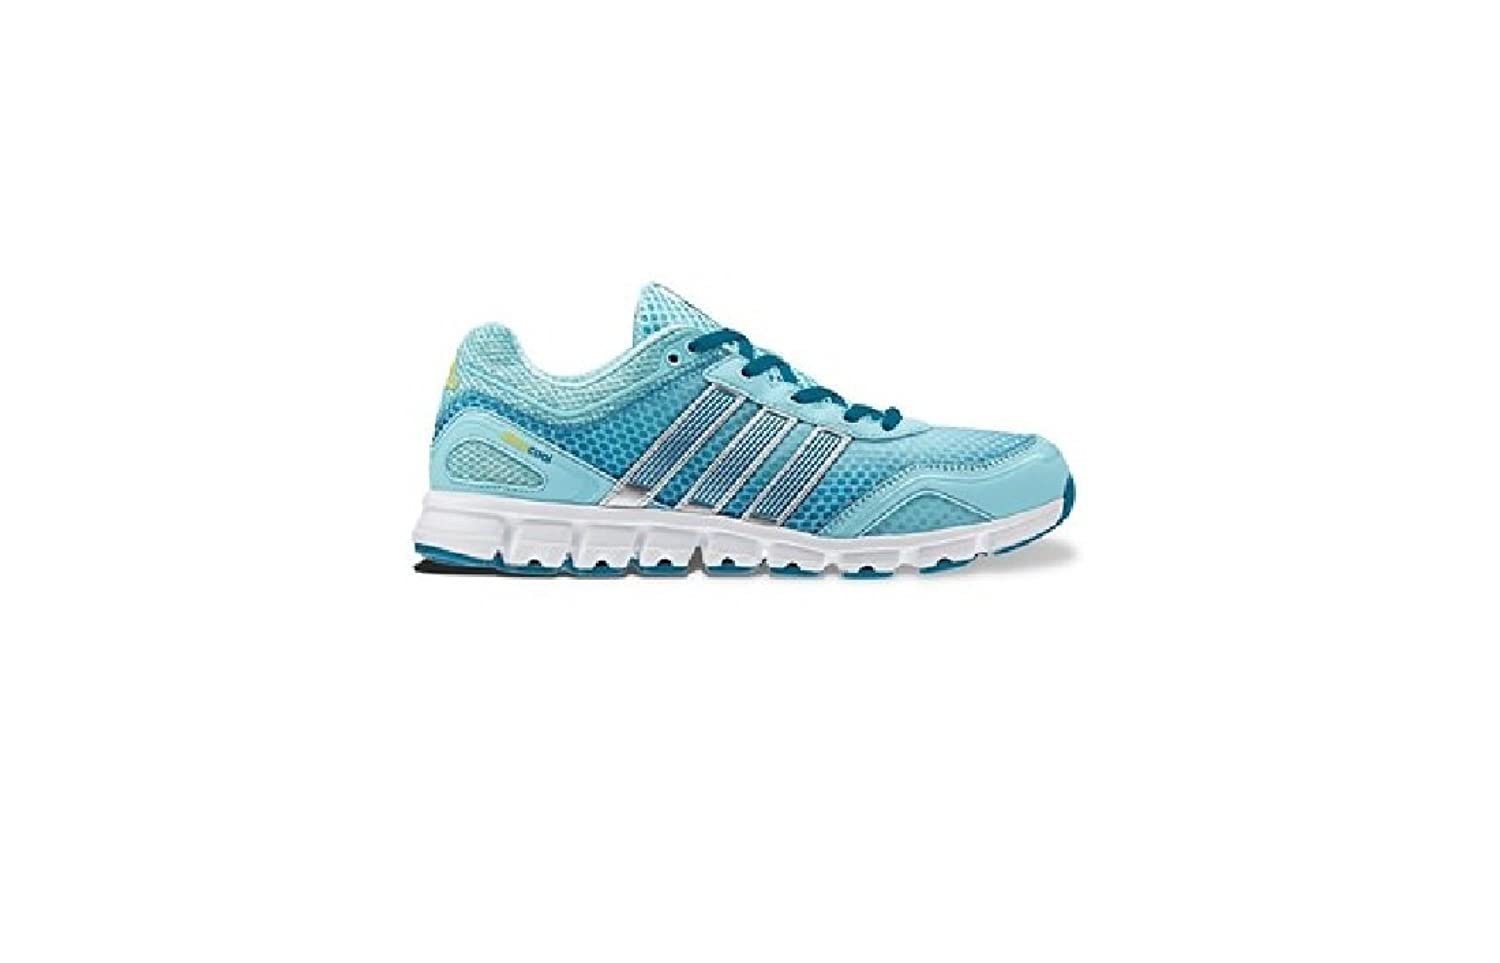 Adidas ClimaCool Modulation 2 Women's Running Shoes (6